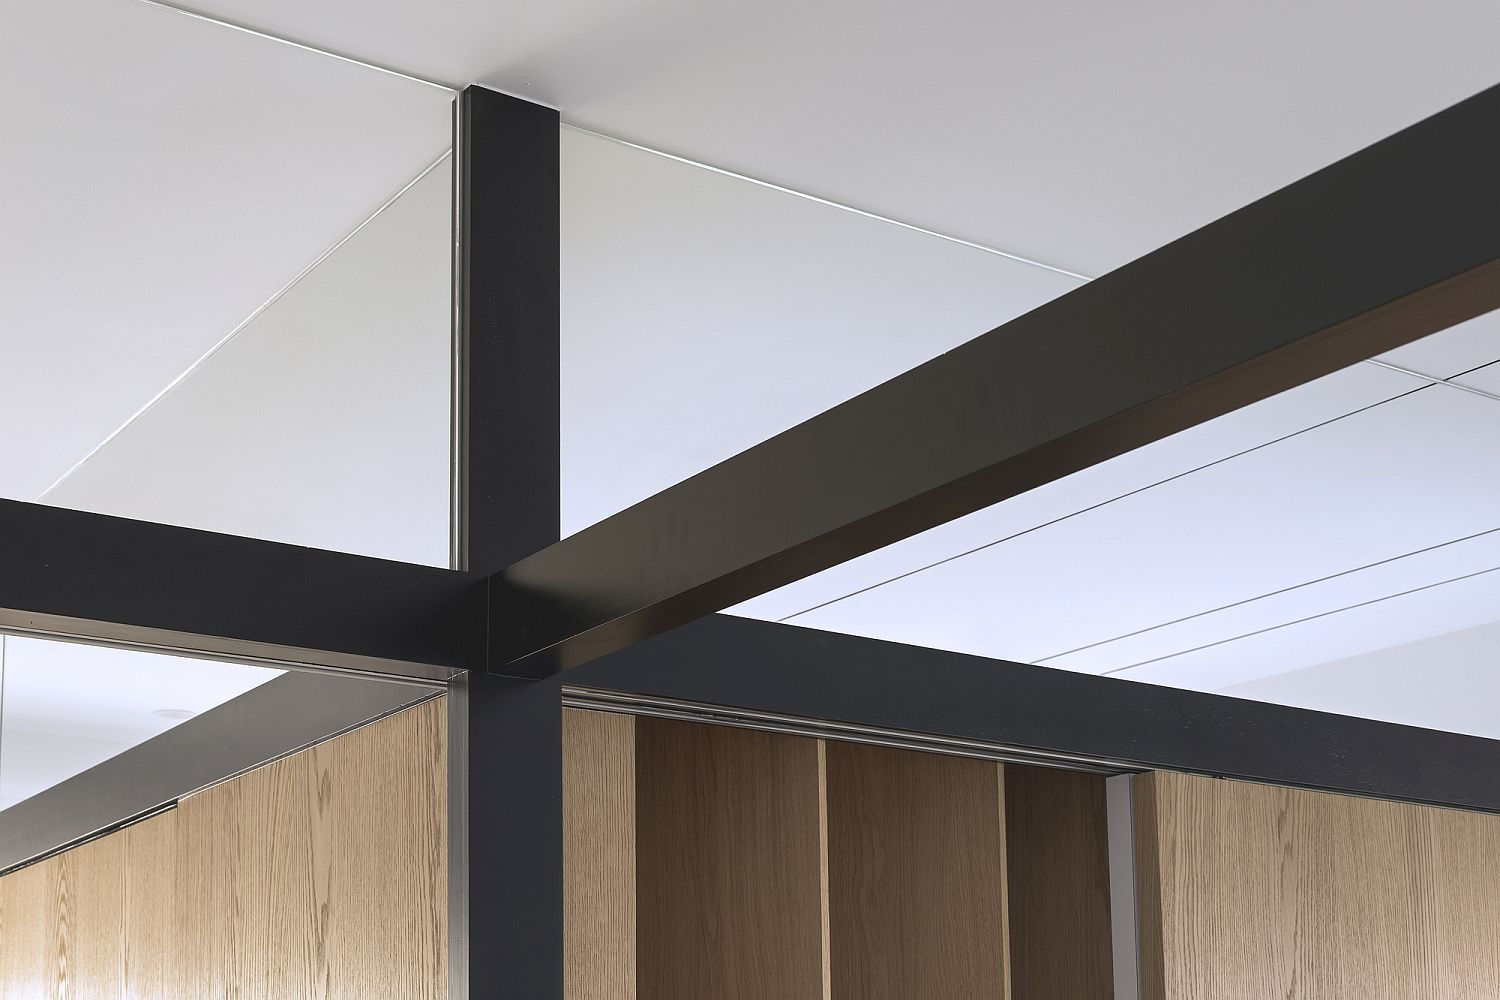 Structural-steel-beams-inside-the-apartment